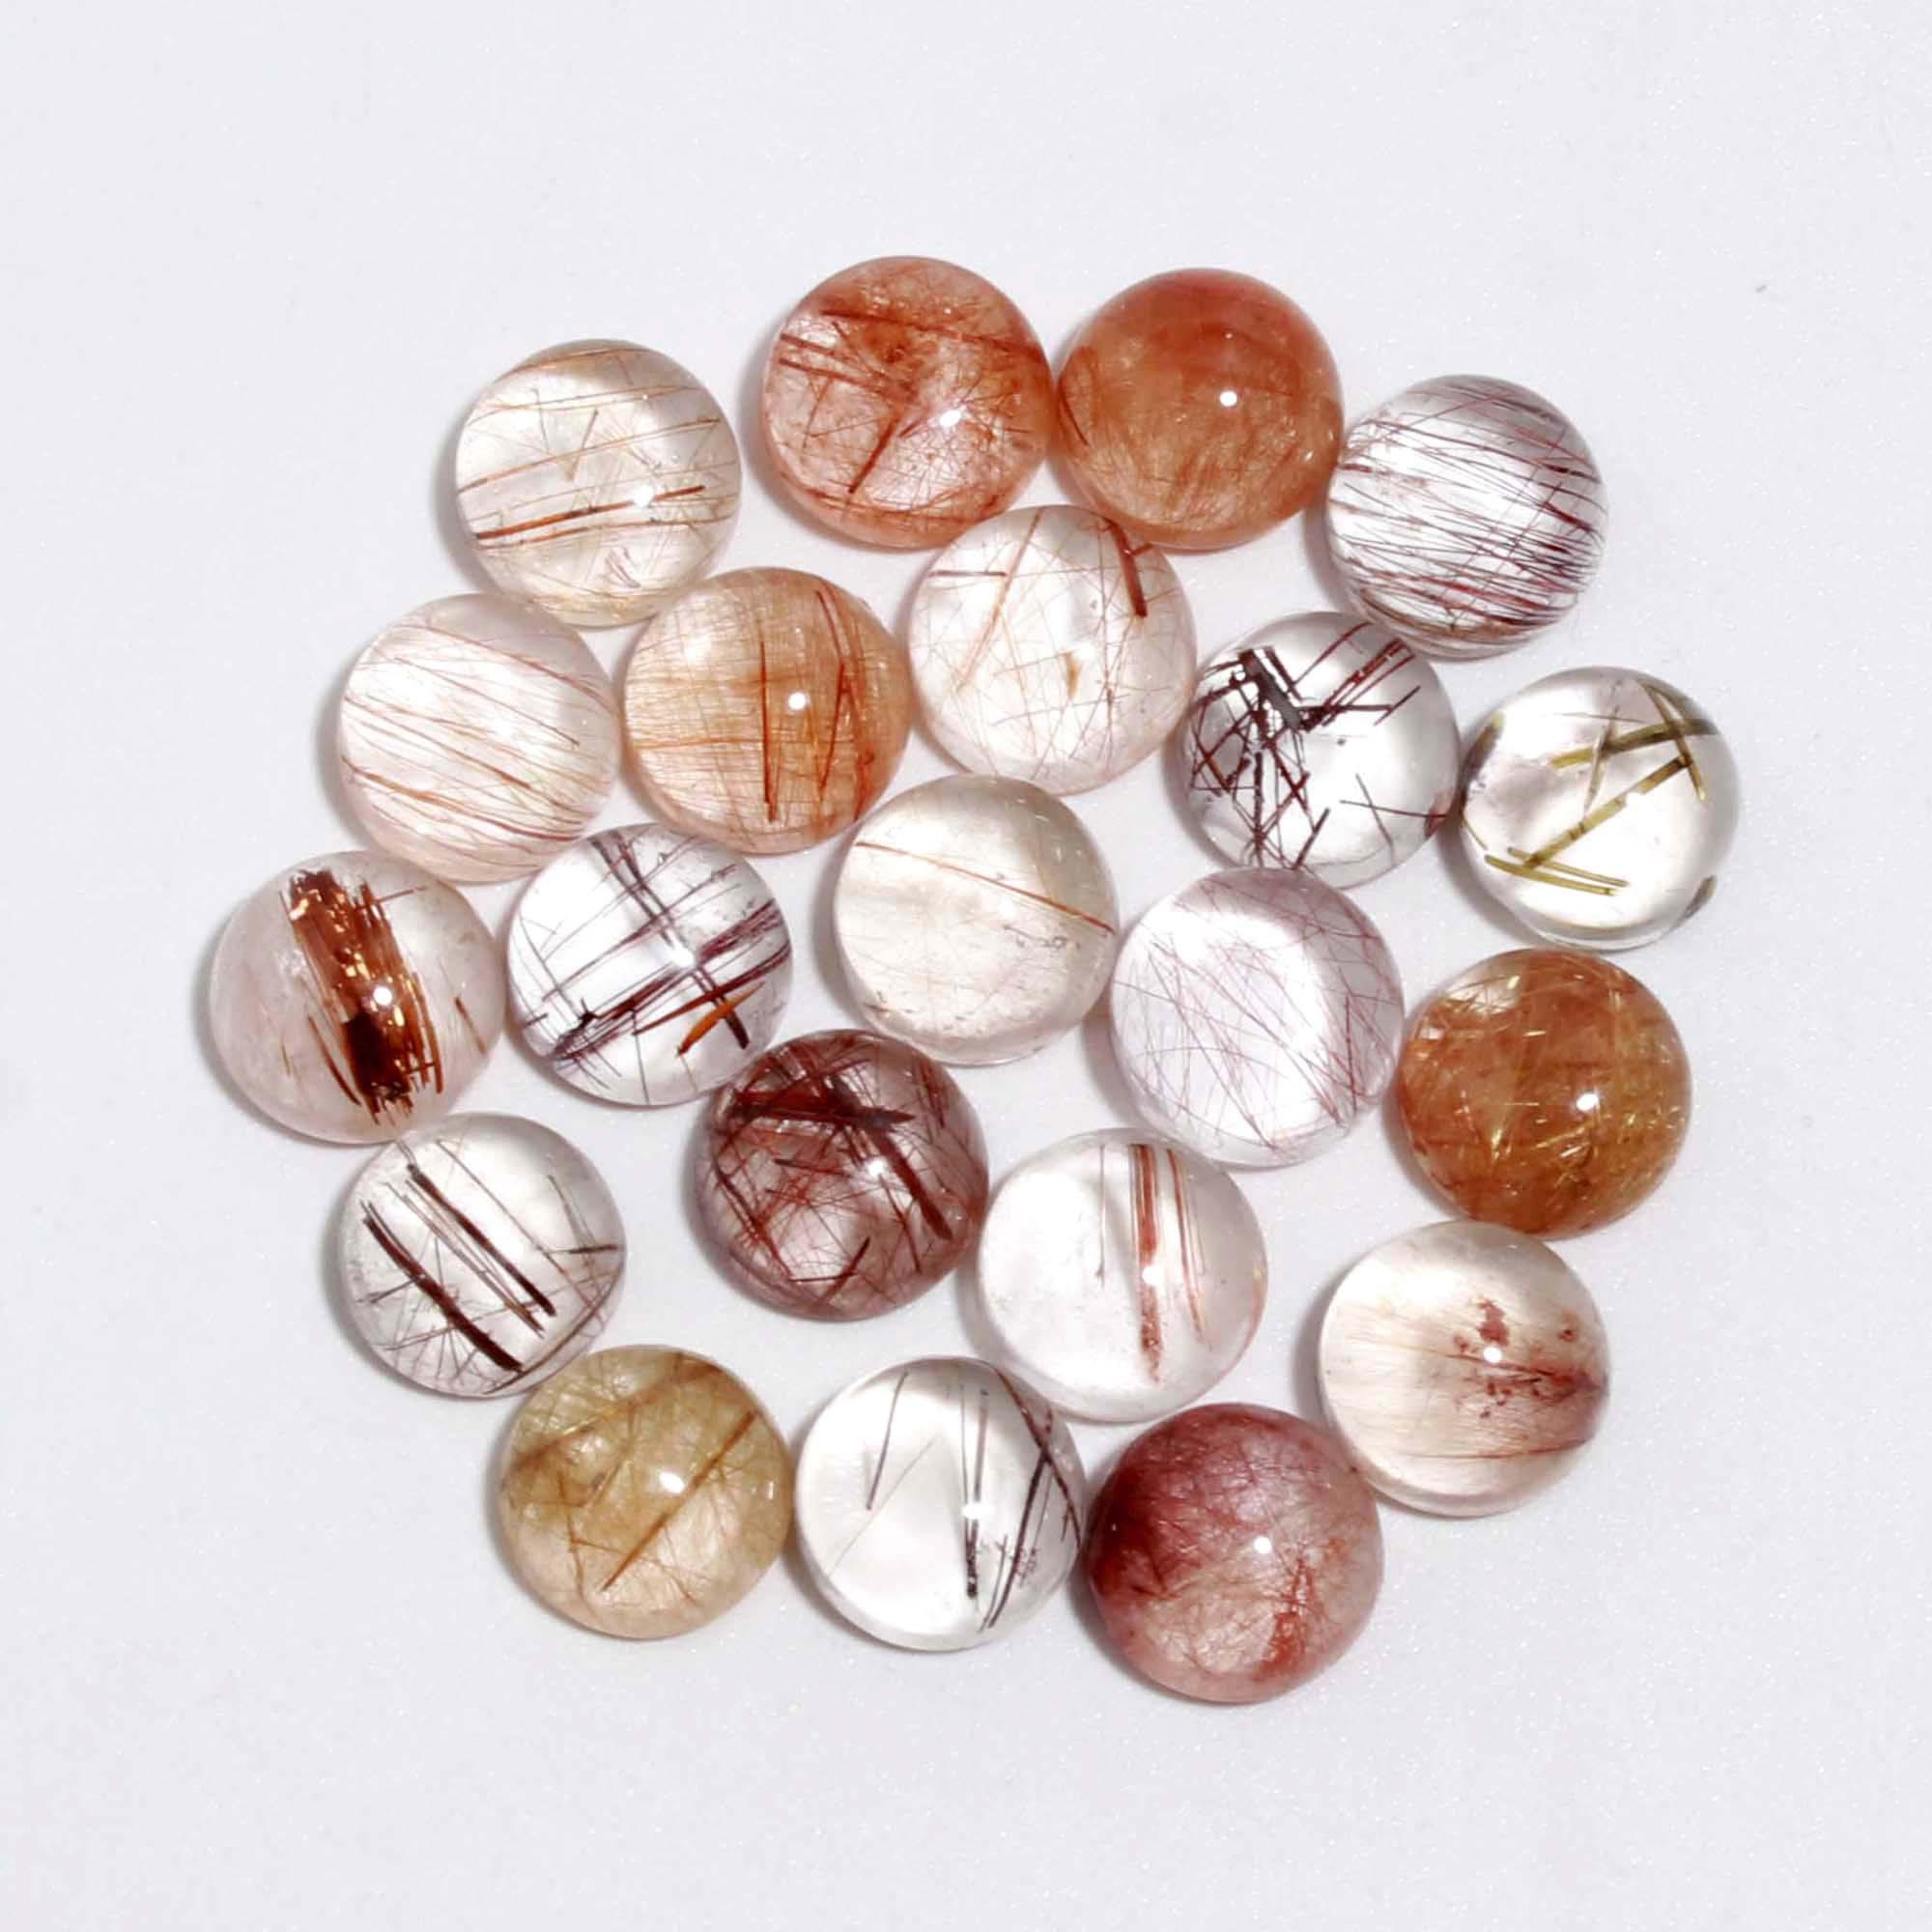 Oval and round sunstone cabochons wrapped with copper wire